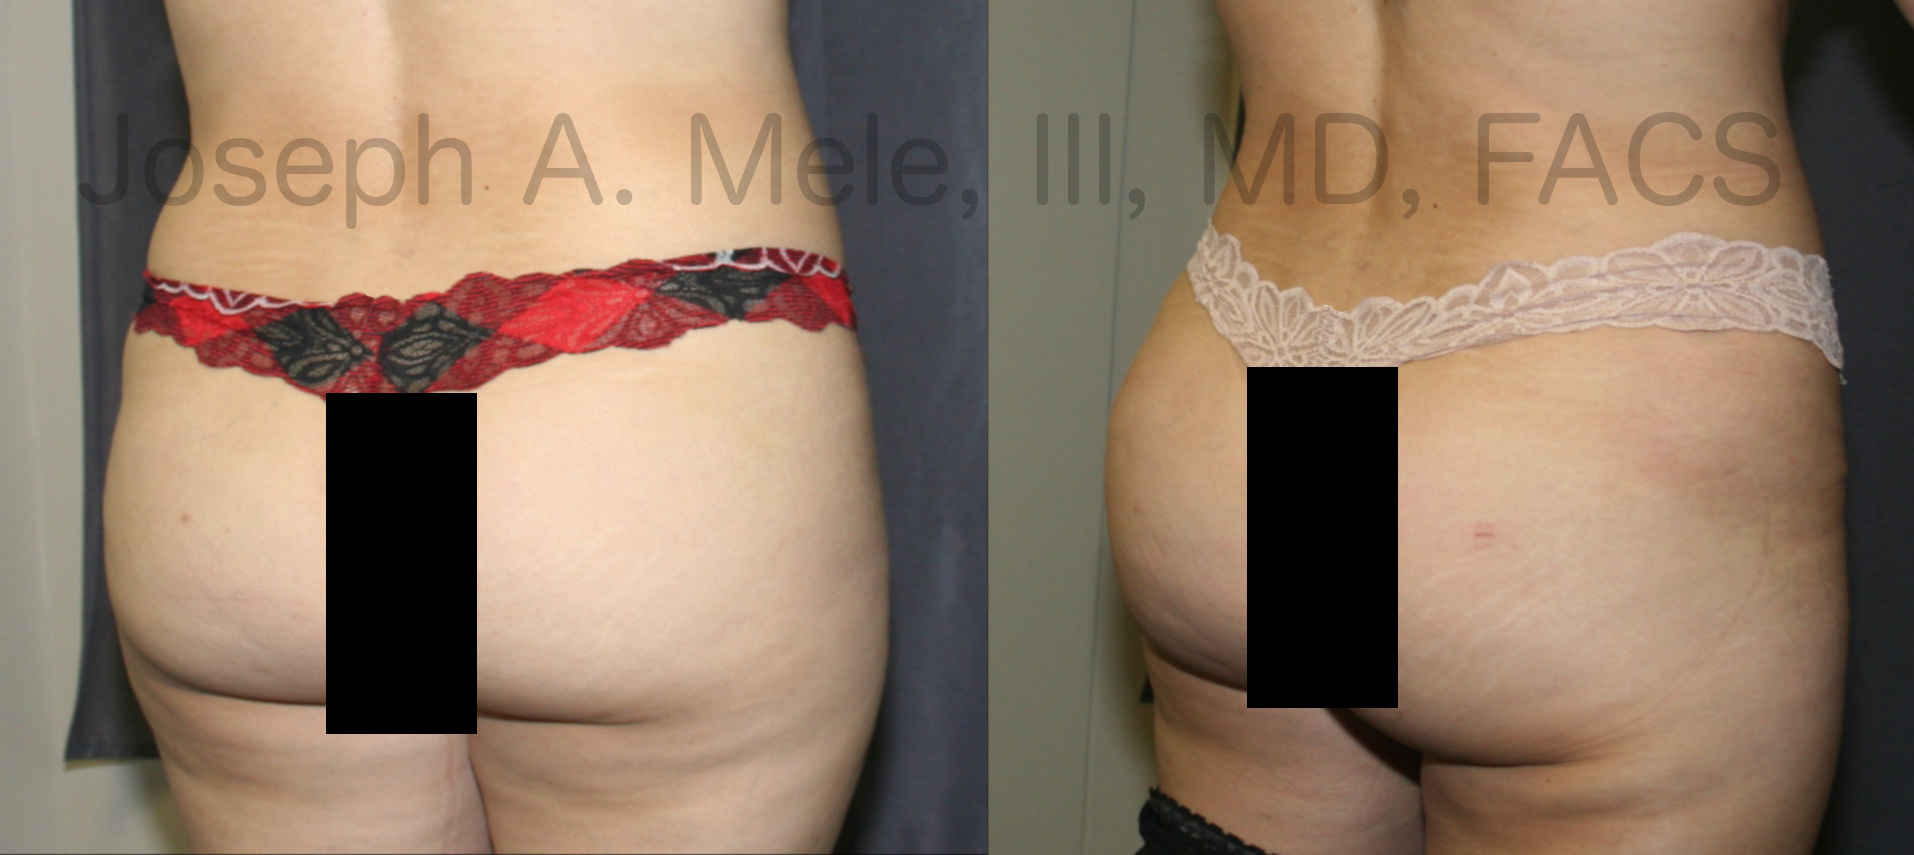 Brazilian Buttocks Lift before and after photos (BBL)